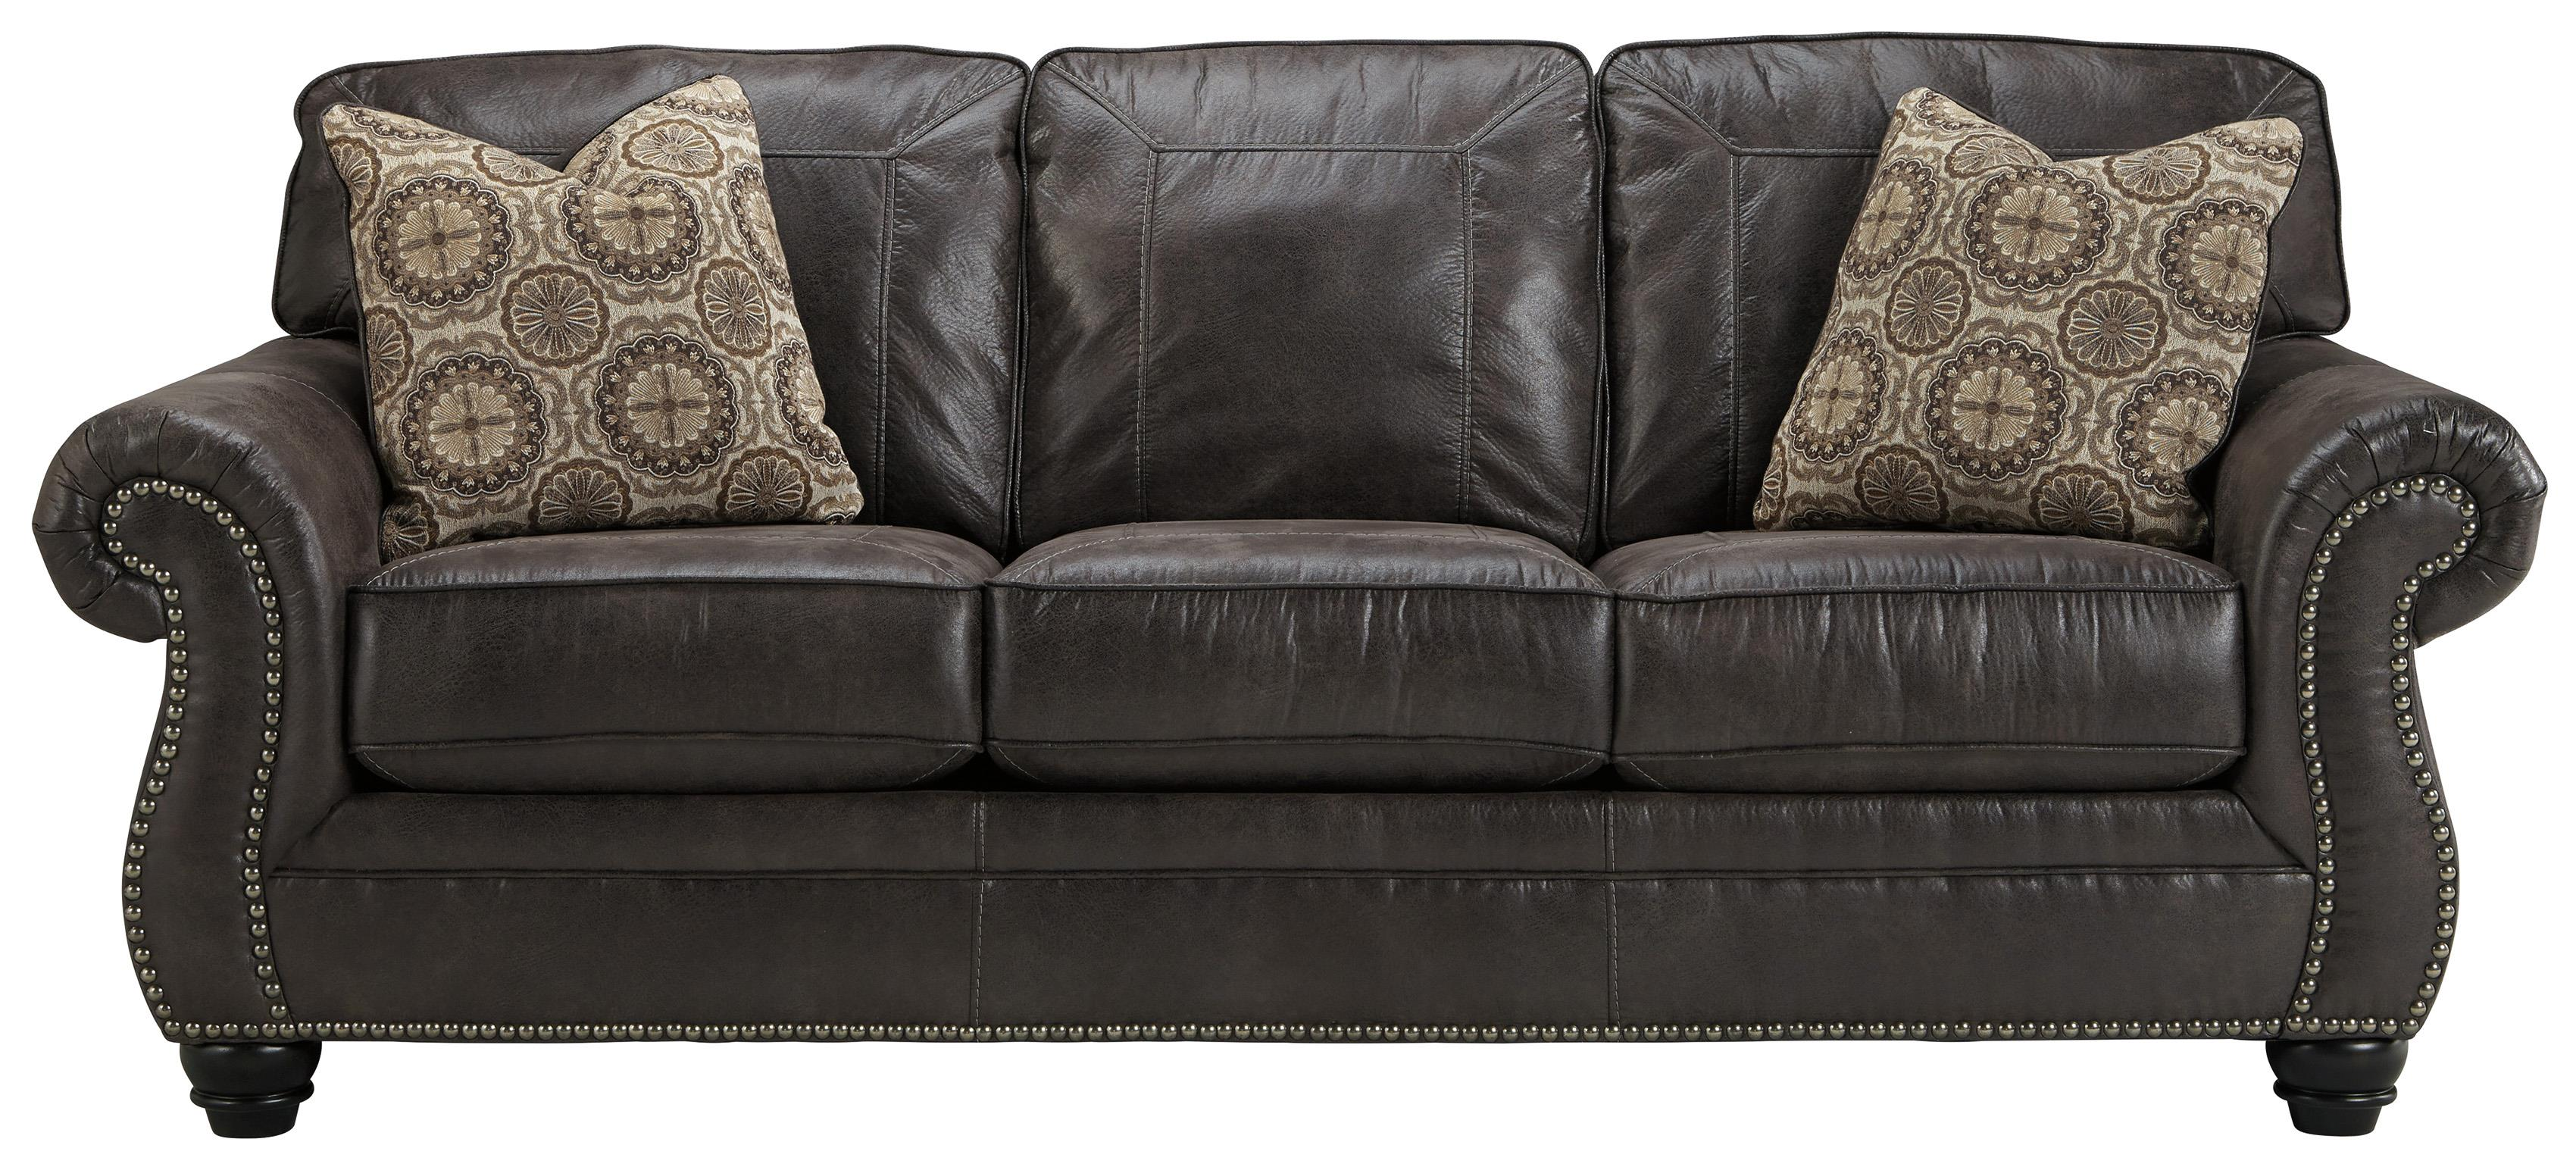 Faux Leather Sofa In A Box Benchcraft Breville Faux Leather Sofa With Rolled Arms And